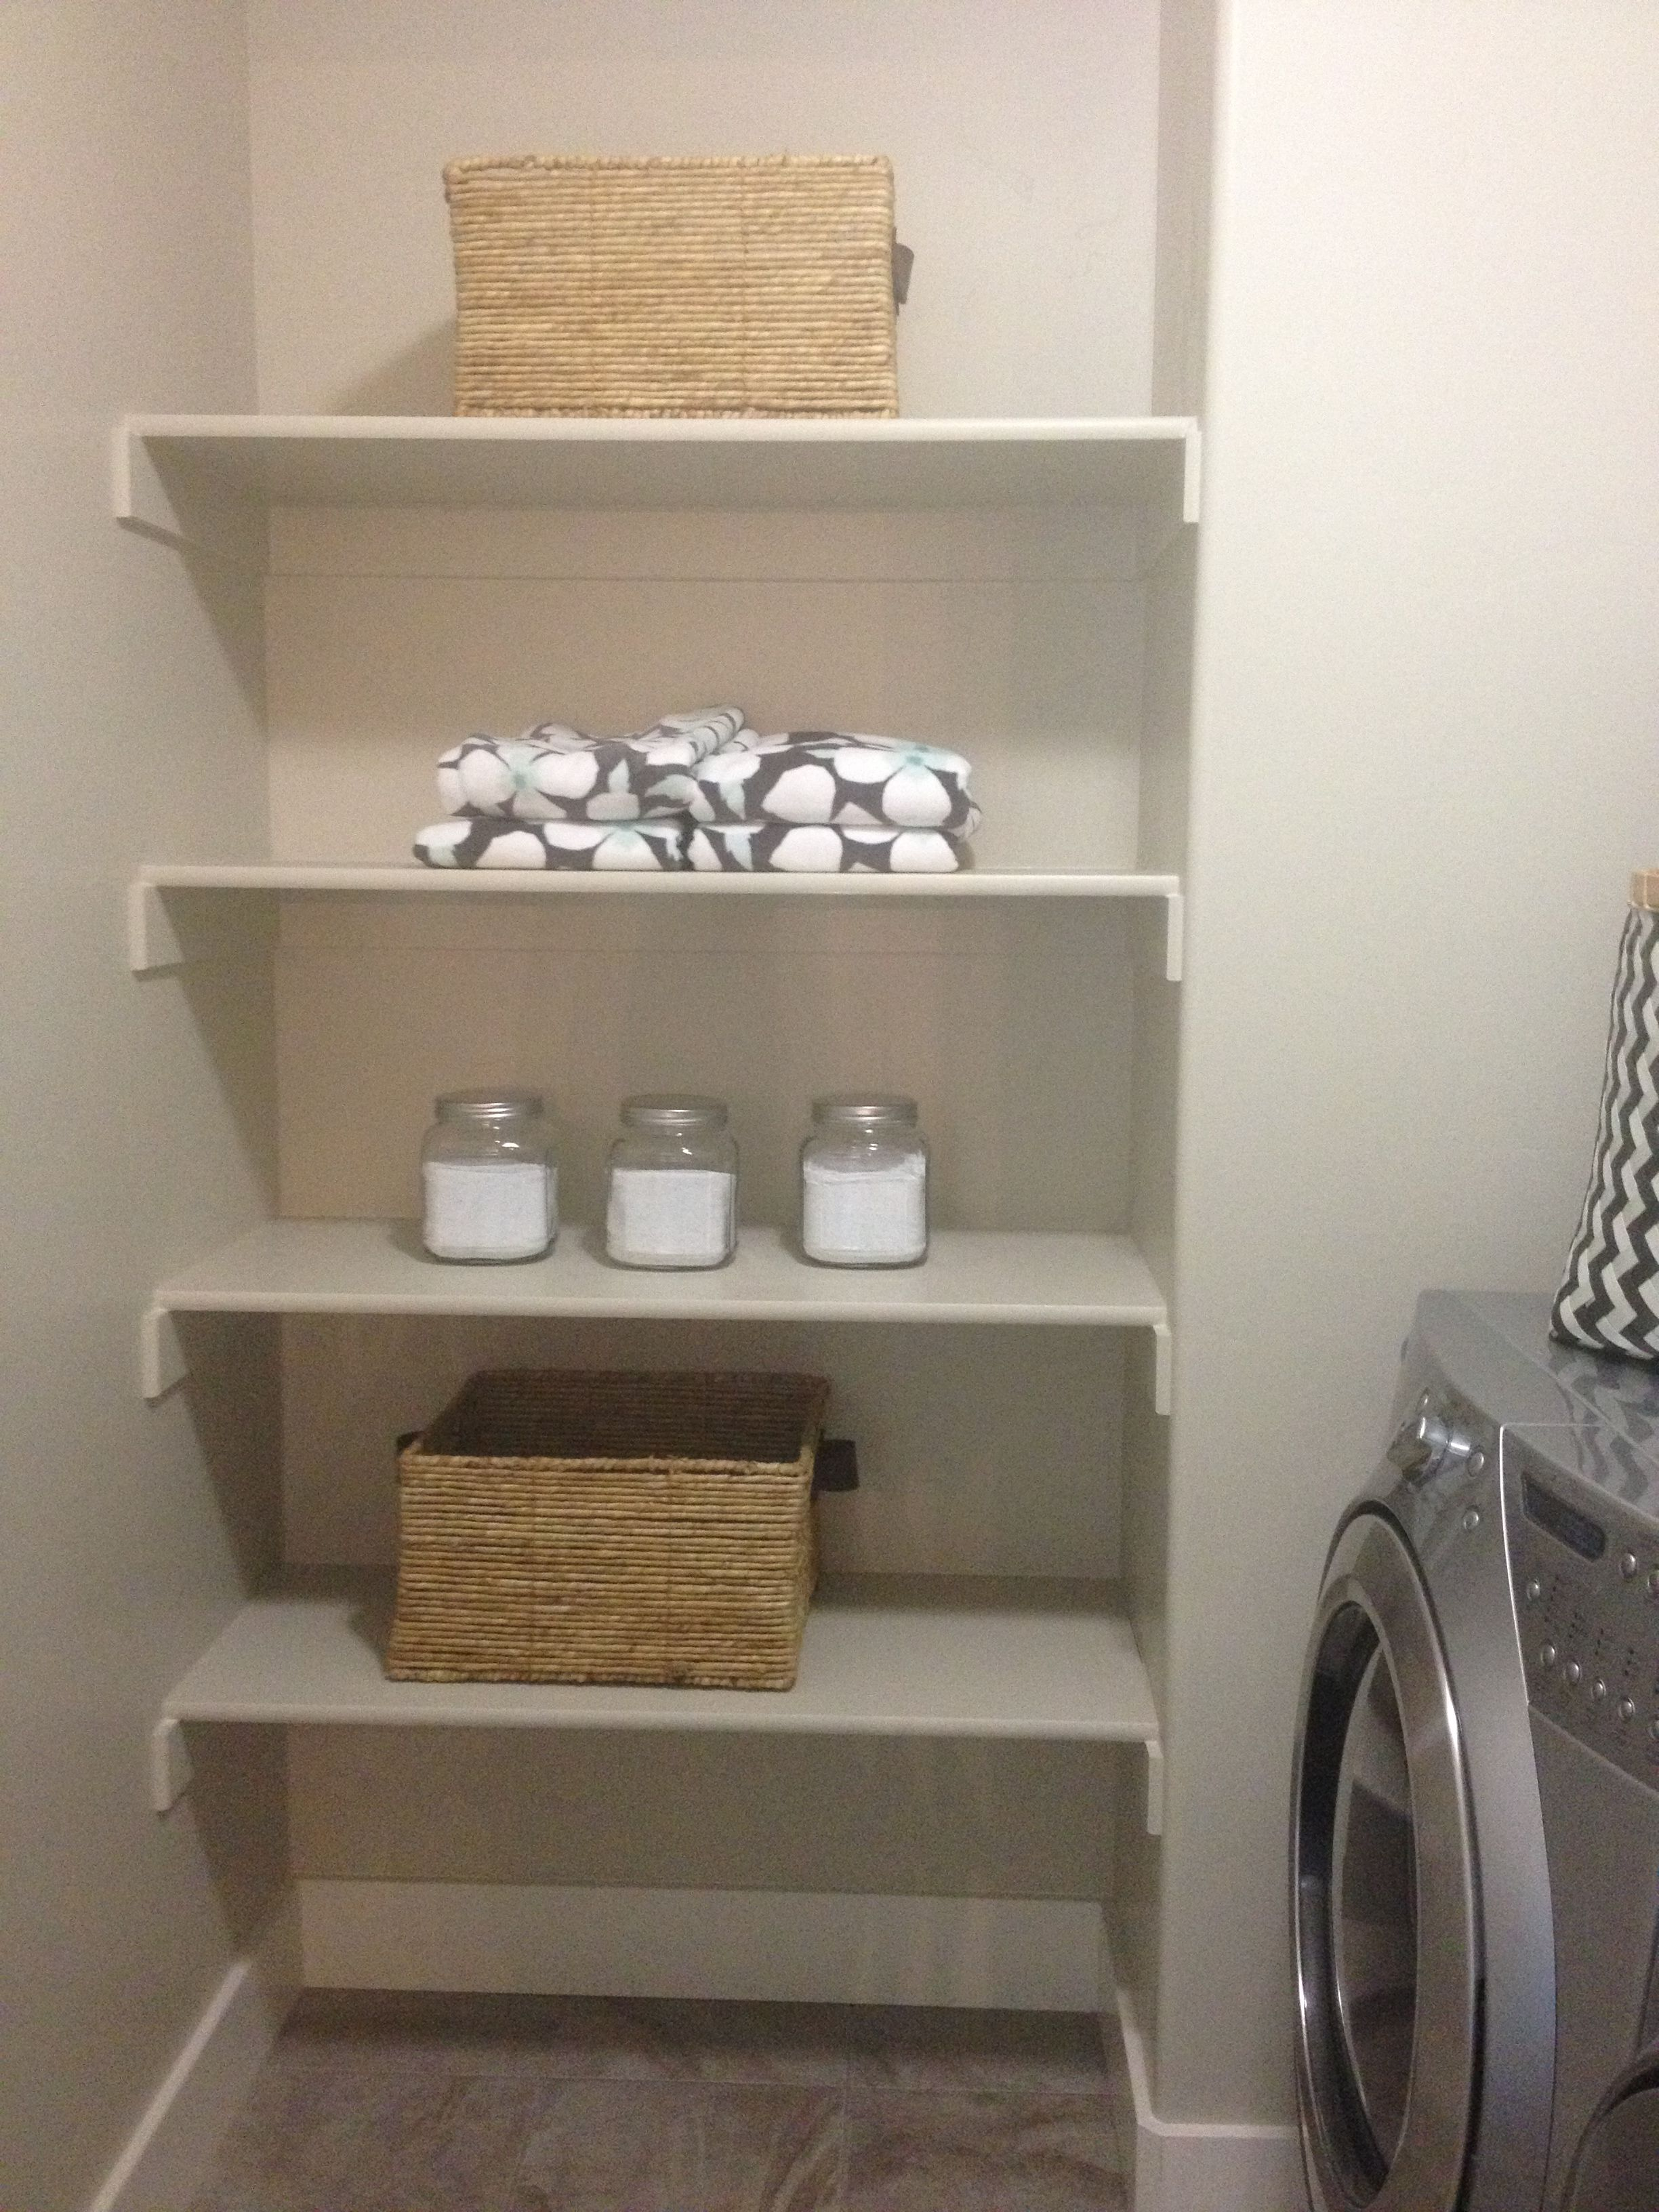 End of hallway storage ideas  Laundry Room Storagethis would look awesome at the end of the